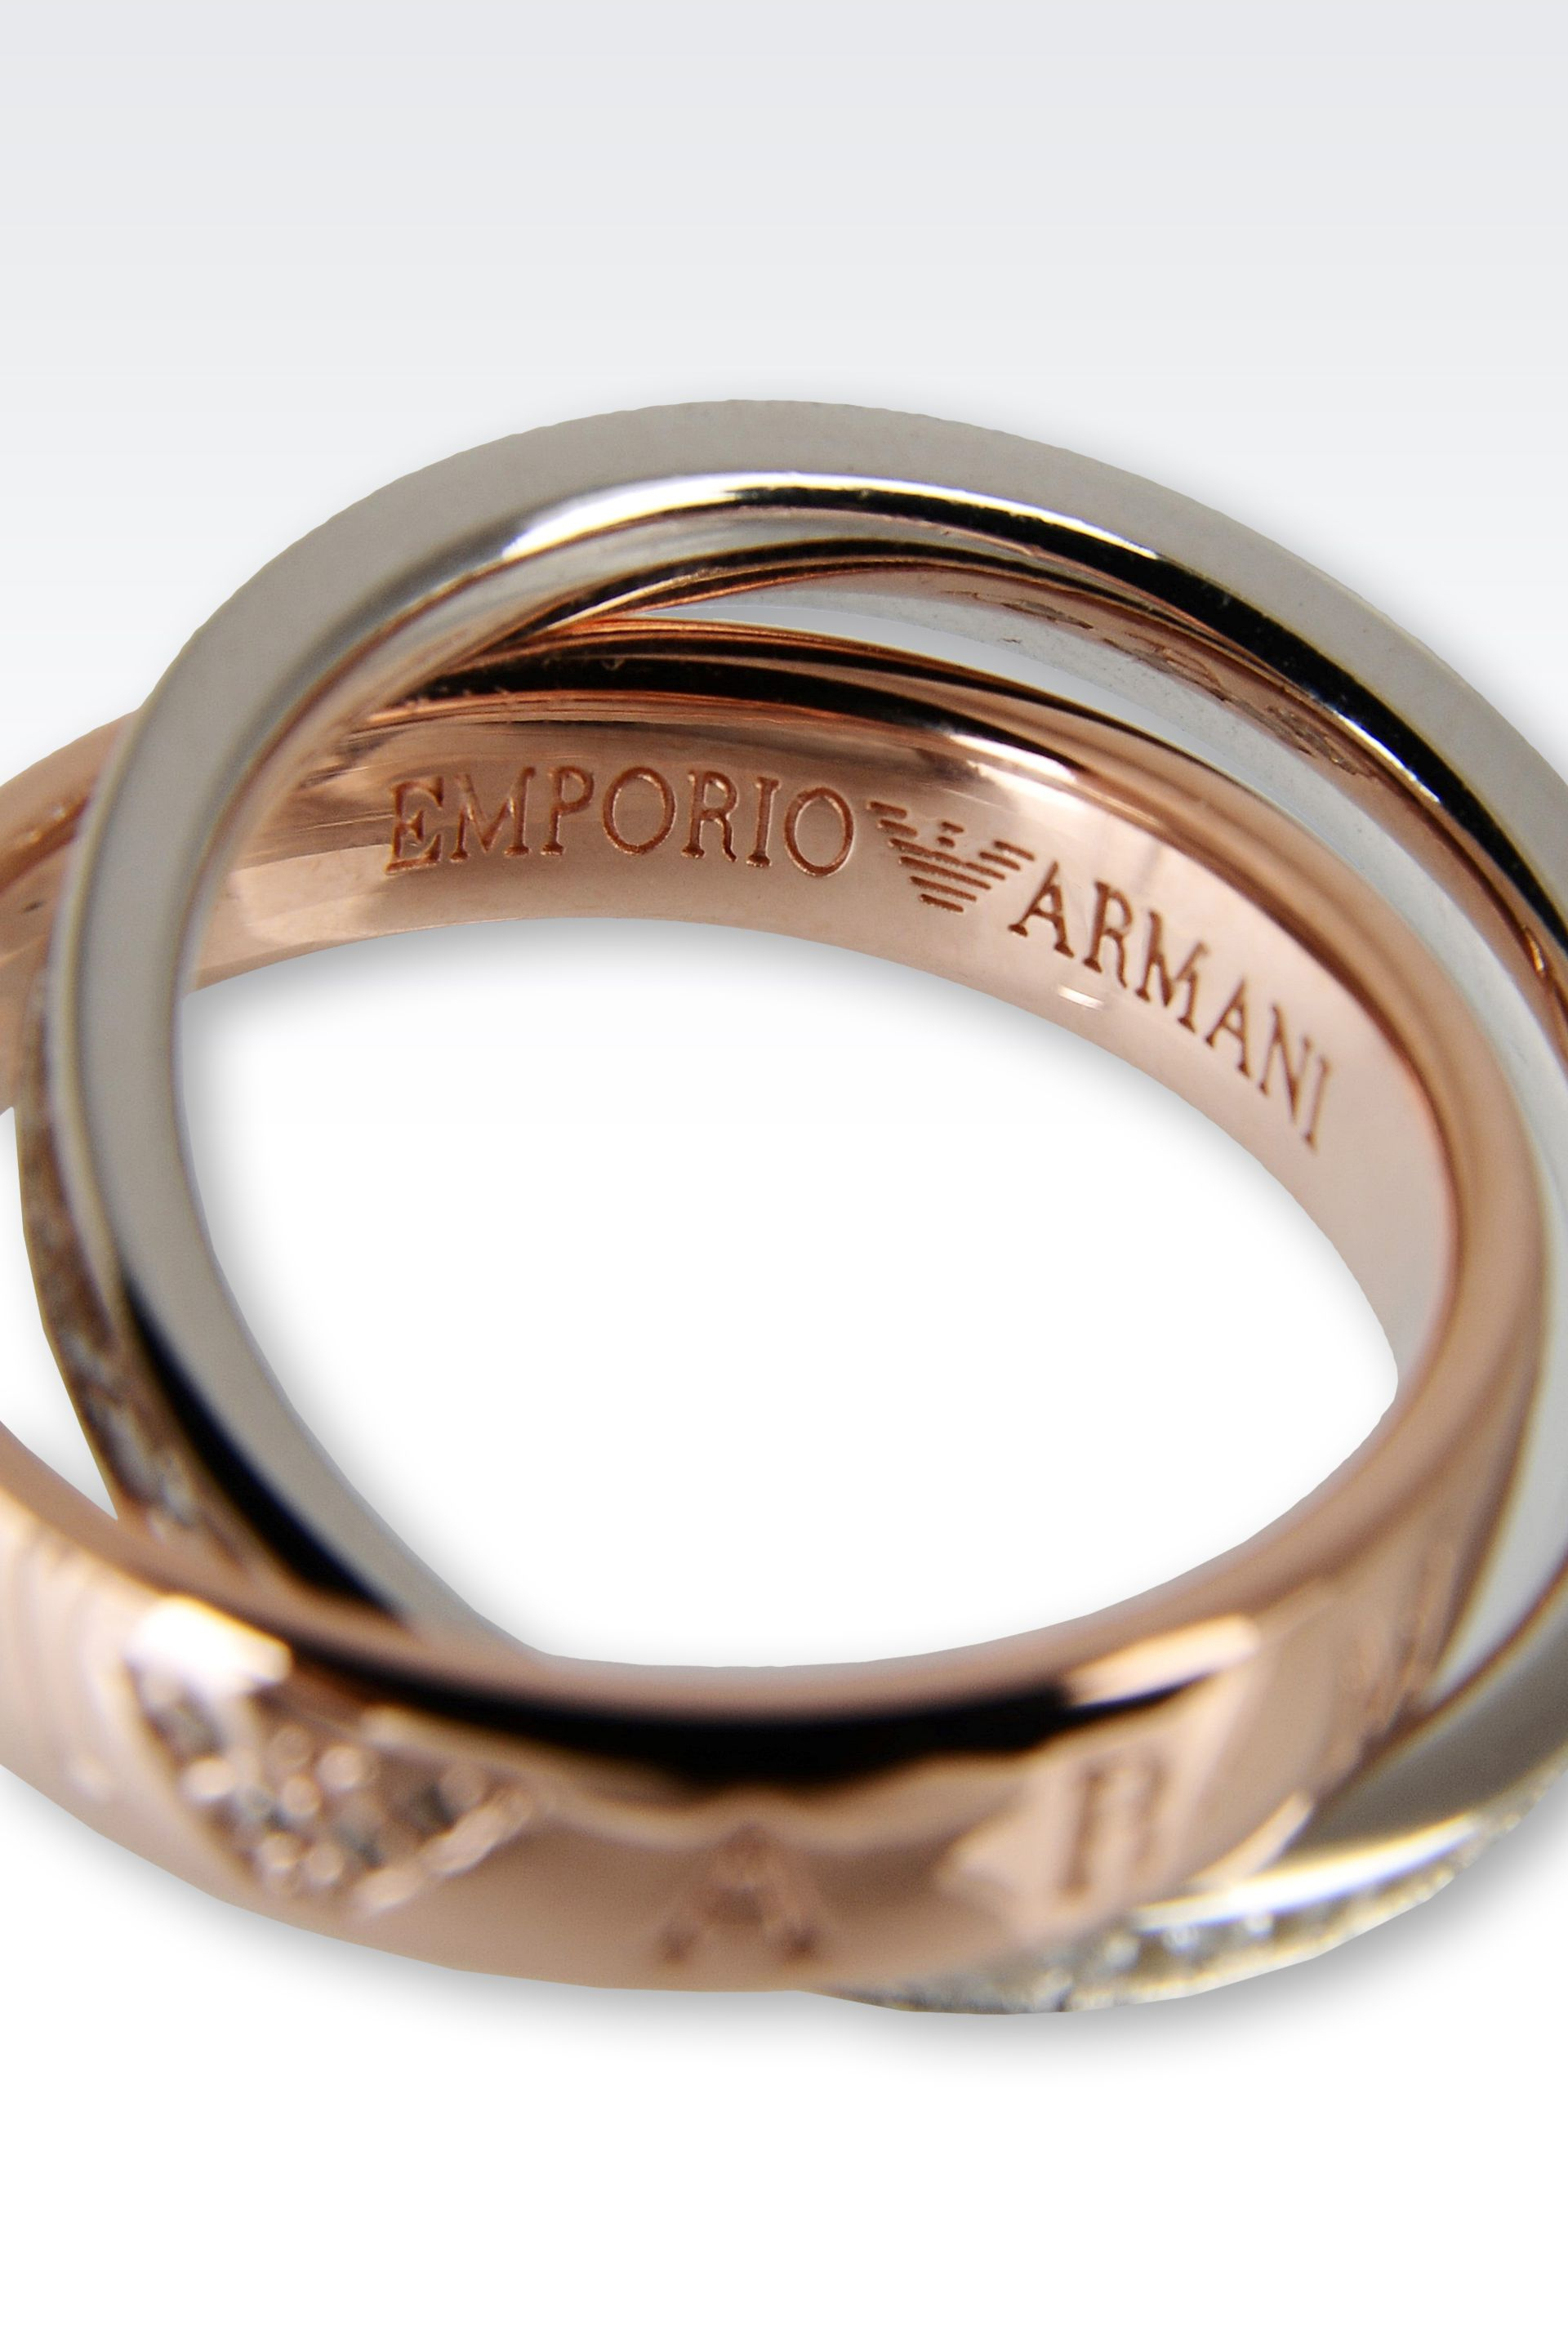 Emporio armani Ring in Pink for Men